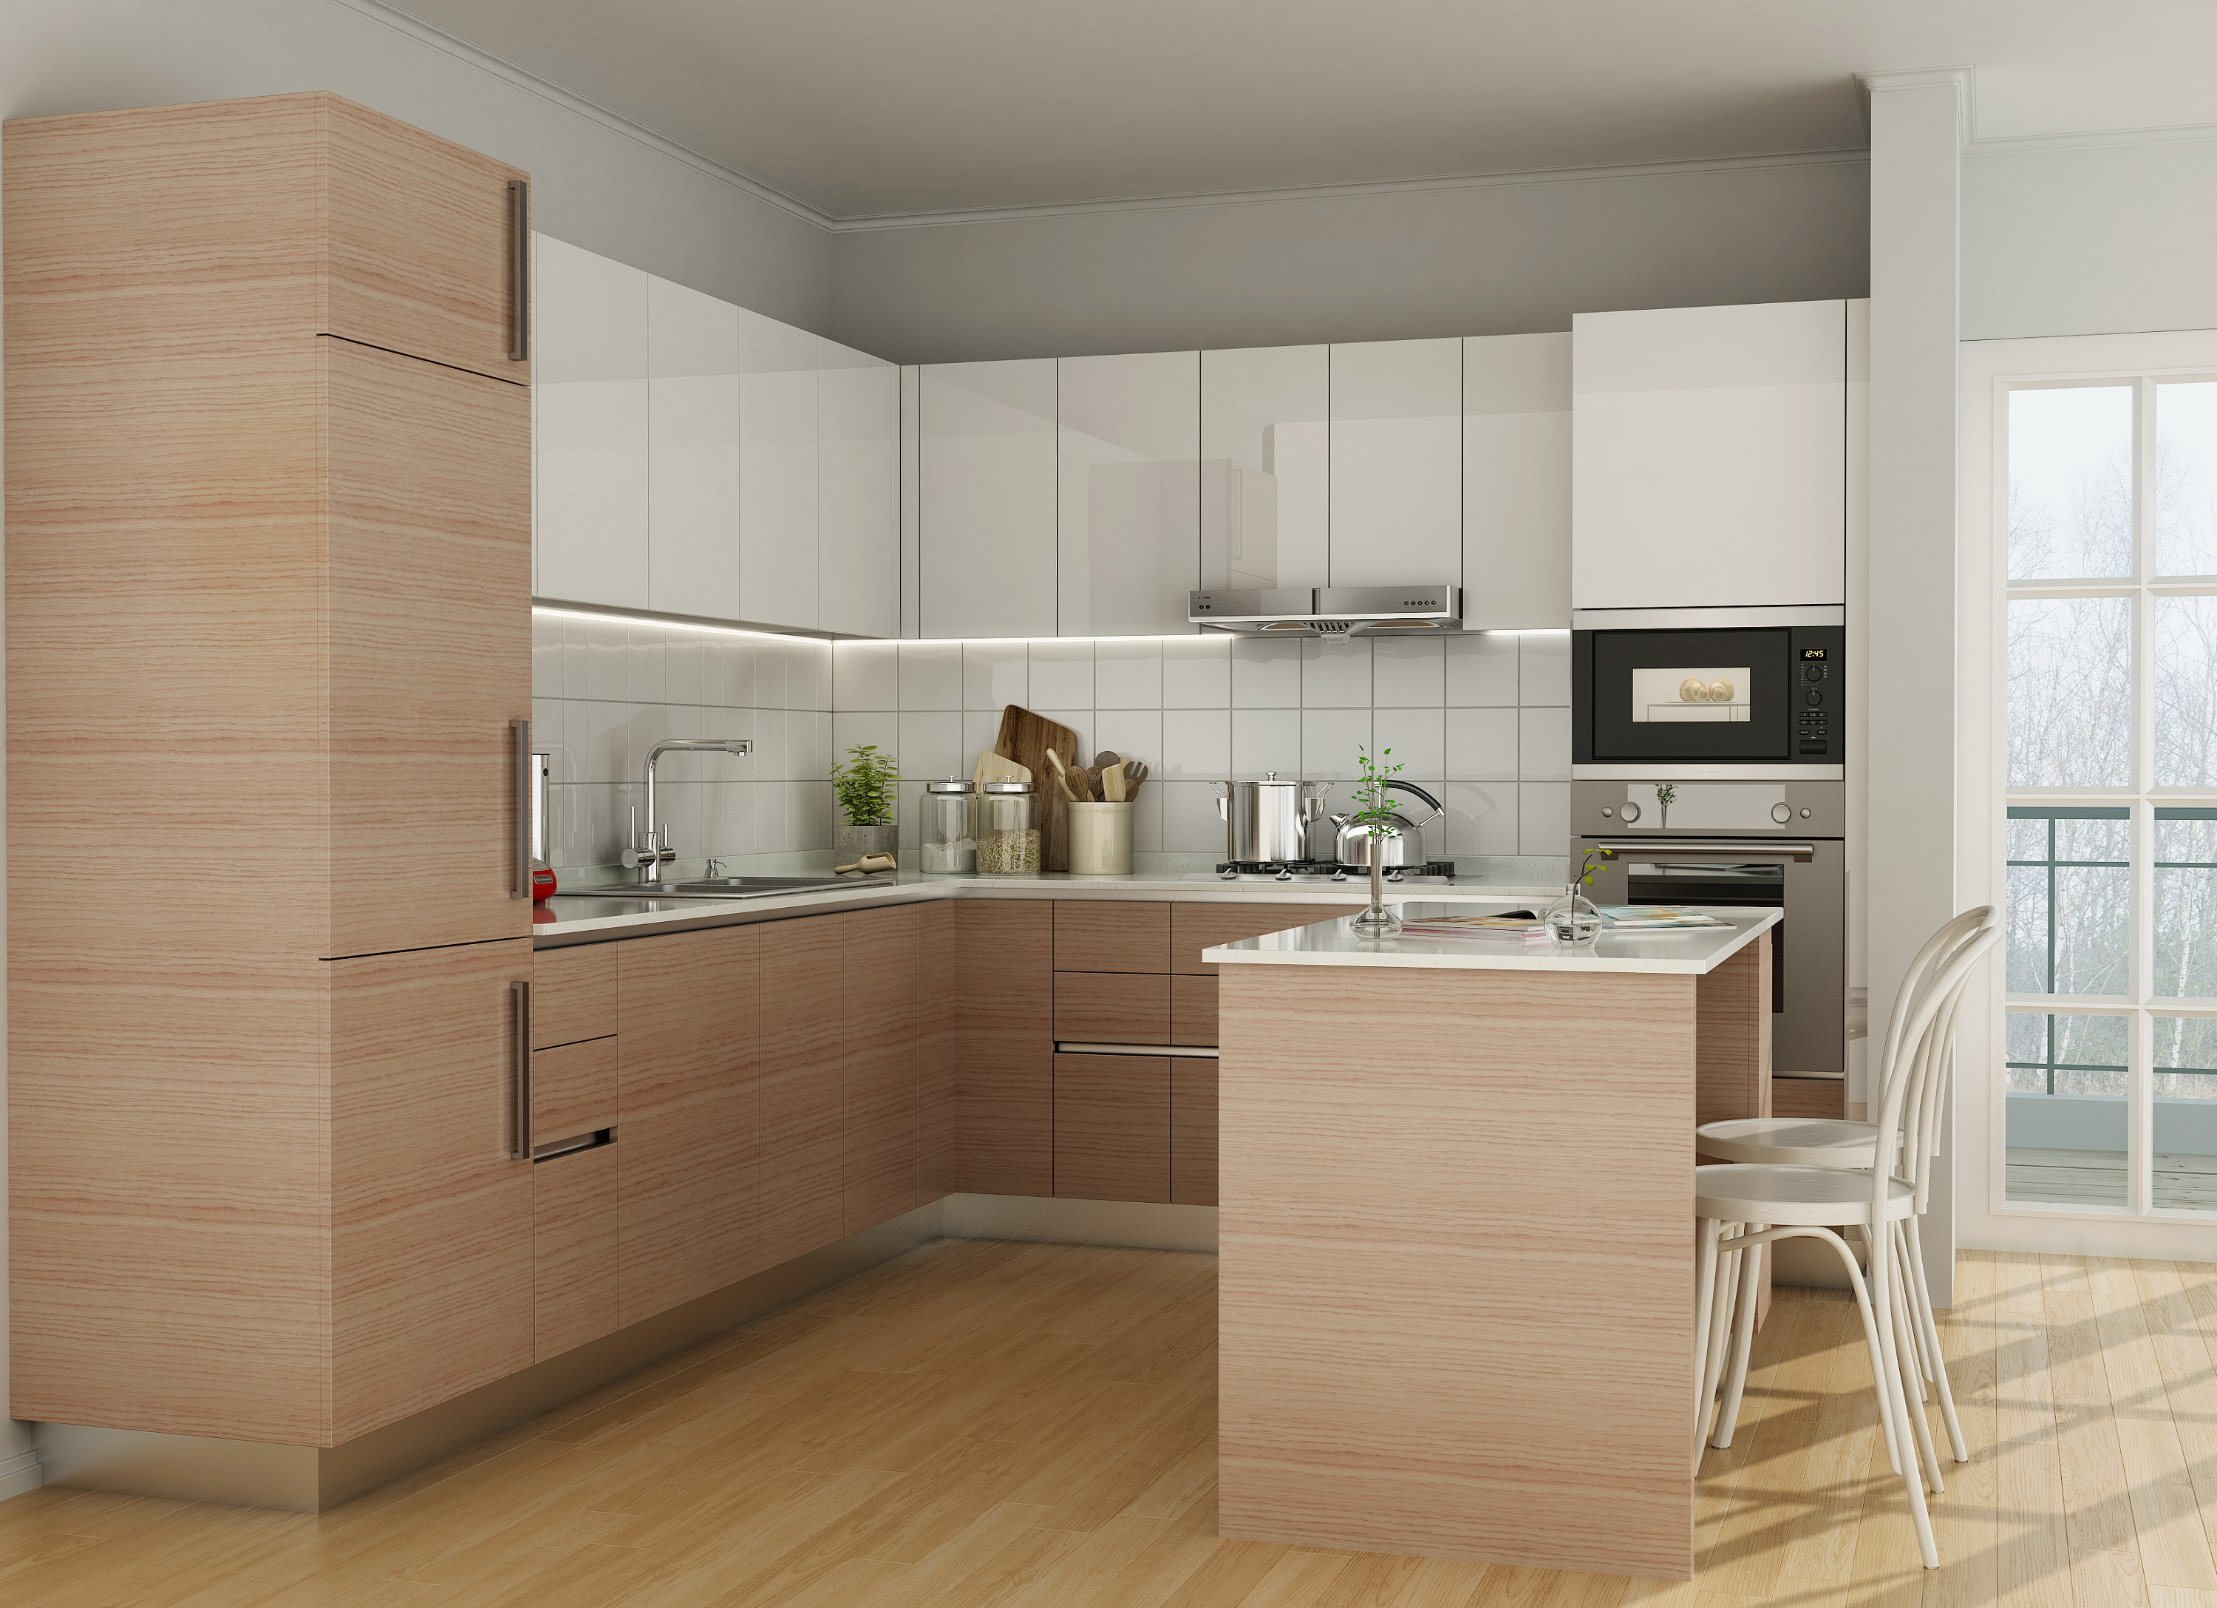 Is Mixing Kitchen Cabinet Finishes Okay Or Not: Mixed Color Kitchen Cabinets